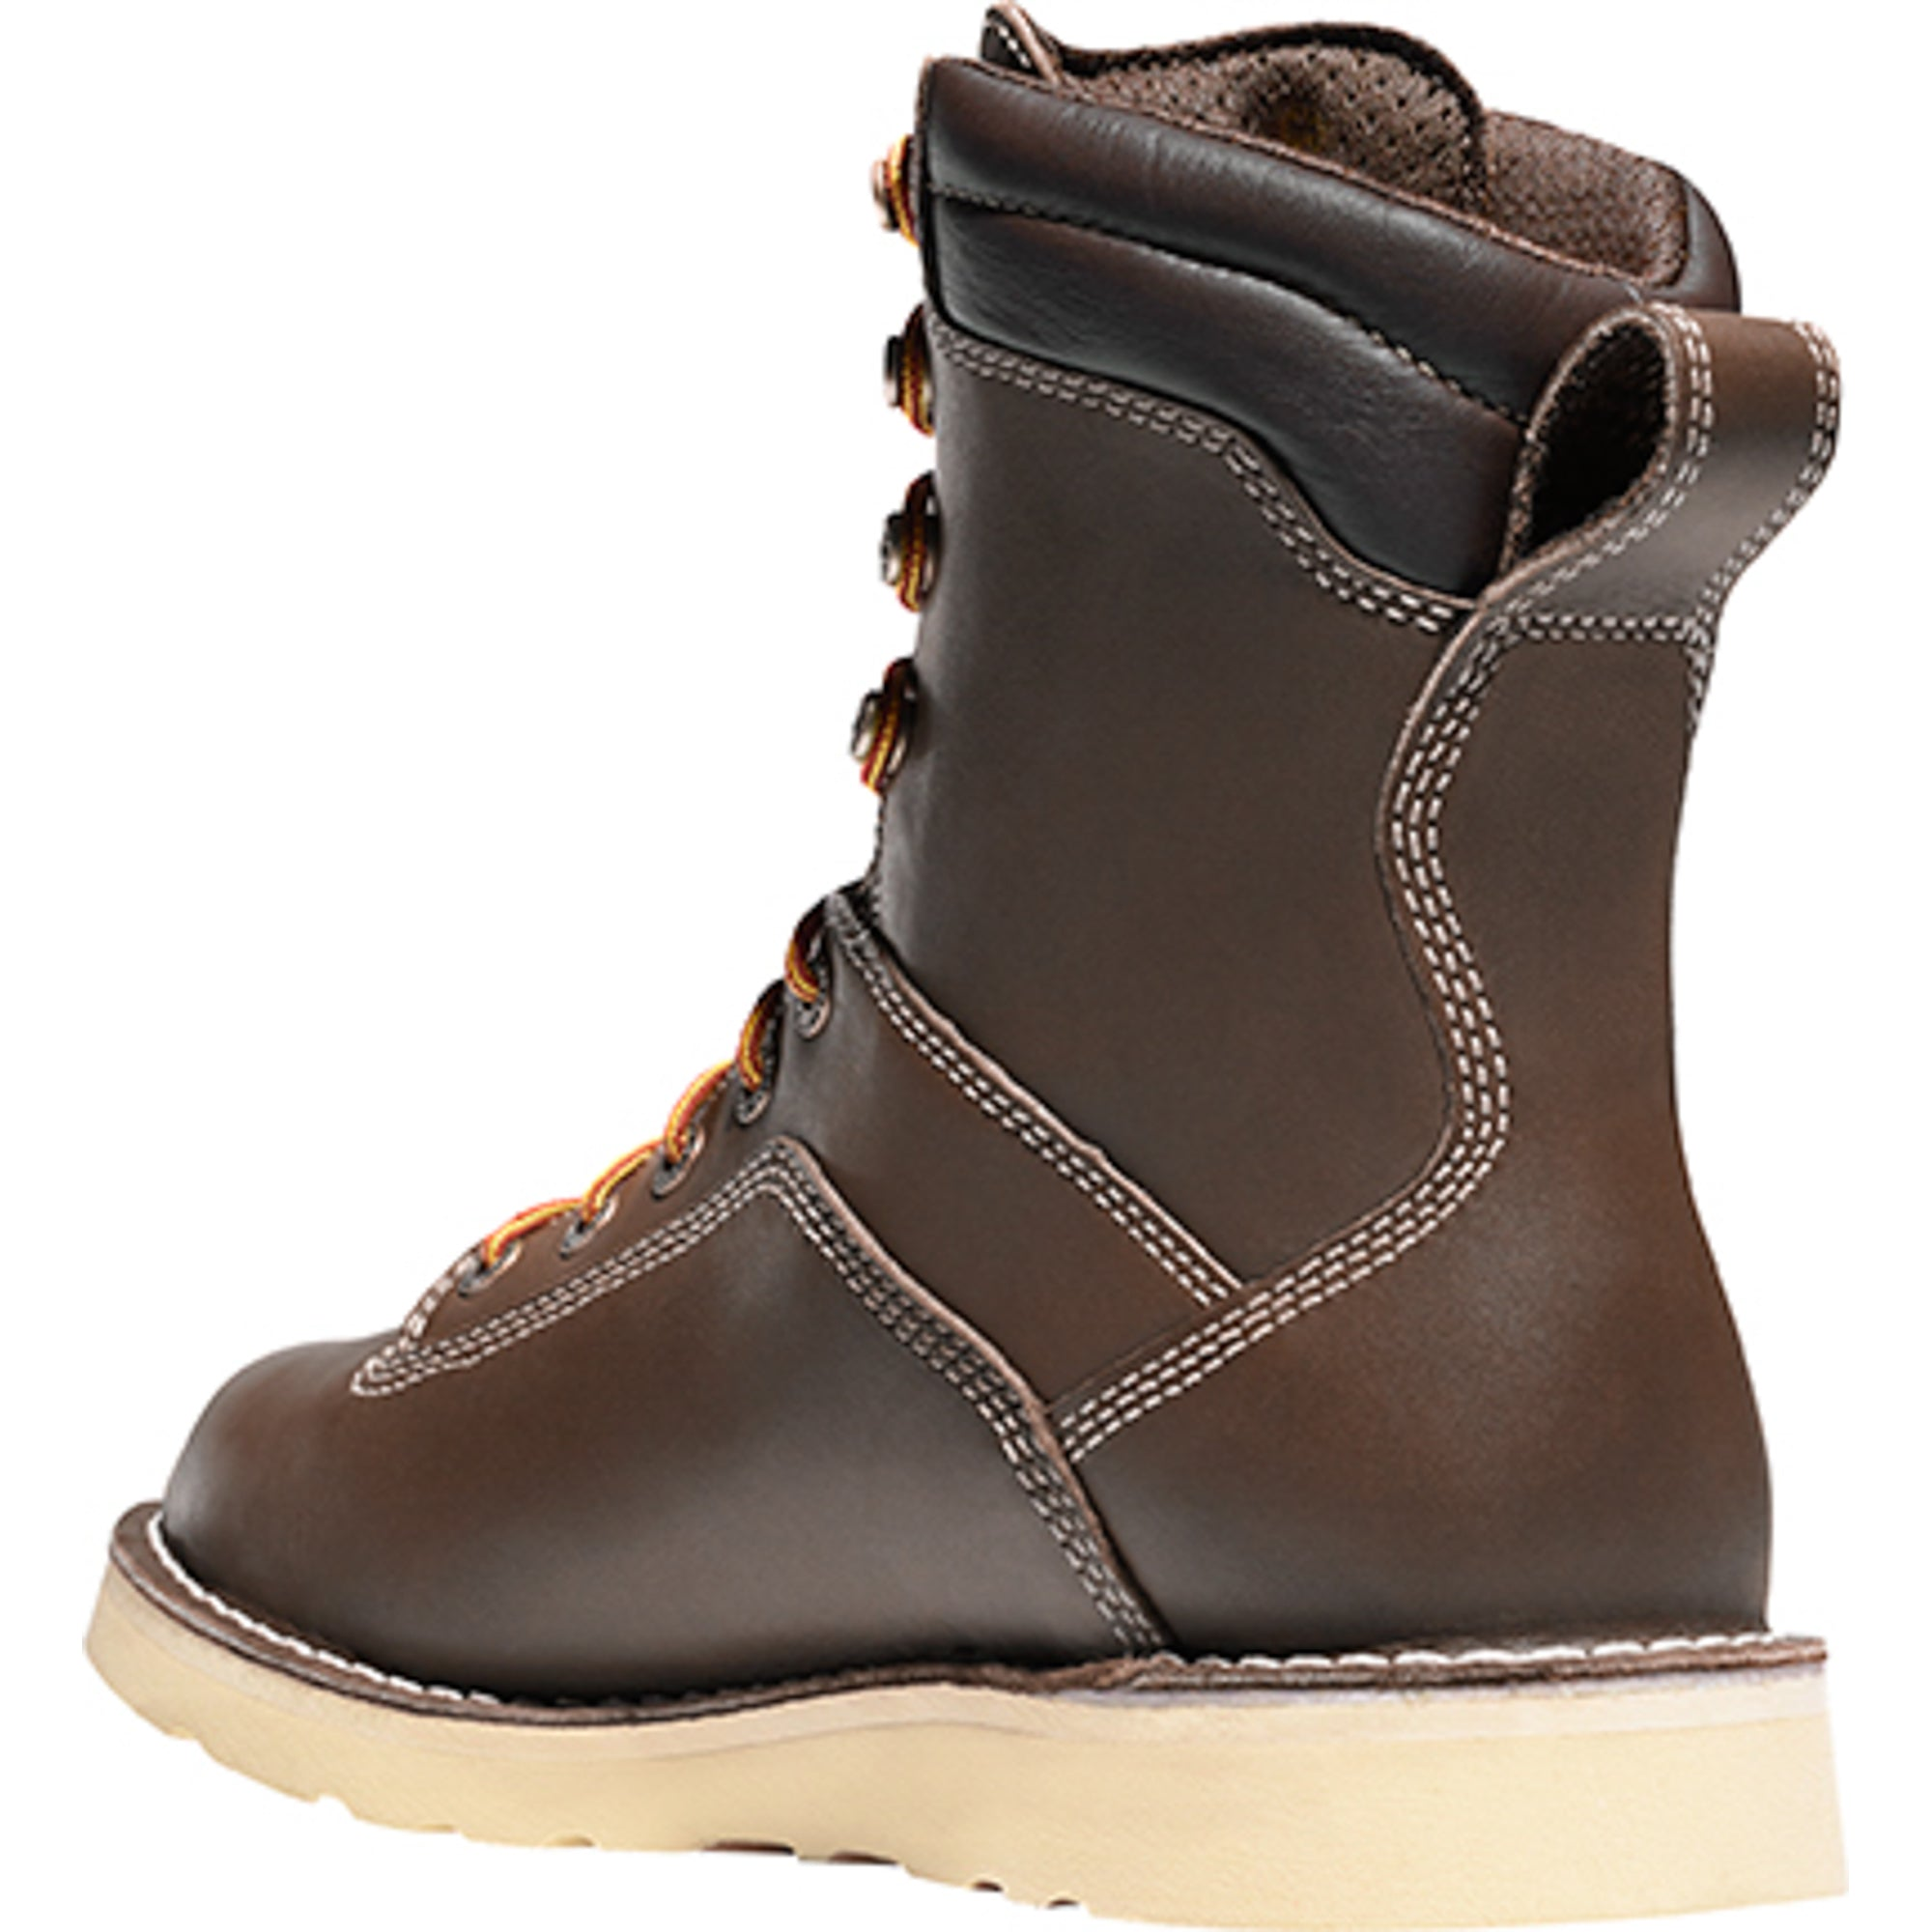 c24b931ef73 Danner Quarry USA 8in AT Wedge Mens Brown Leather GTX Work Boots 17329